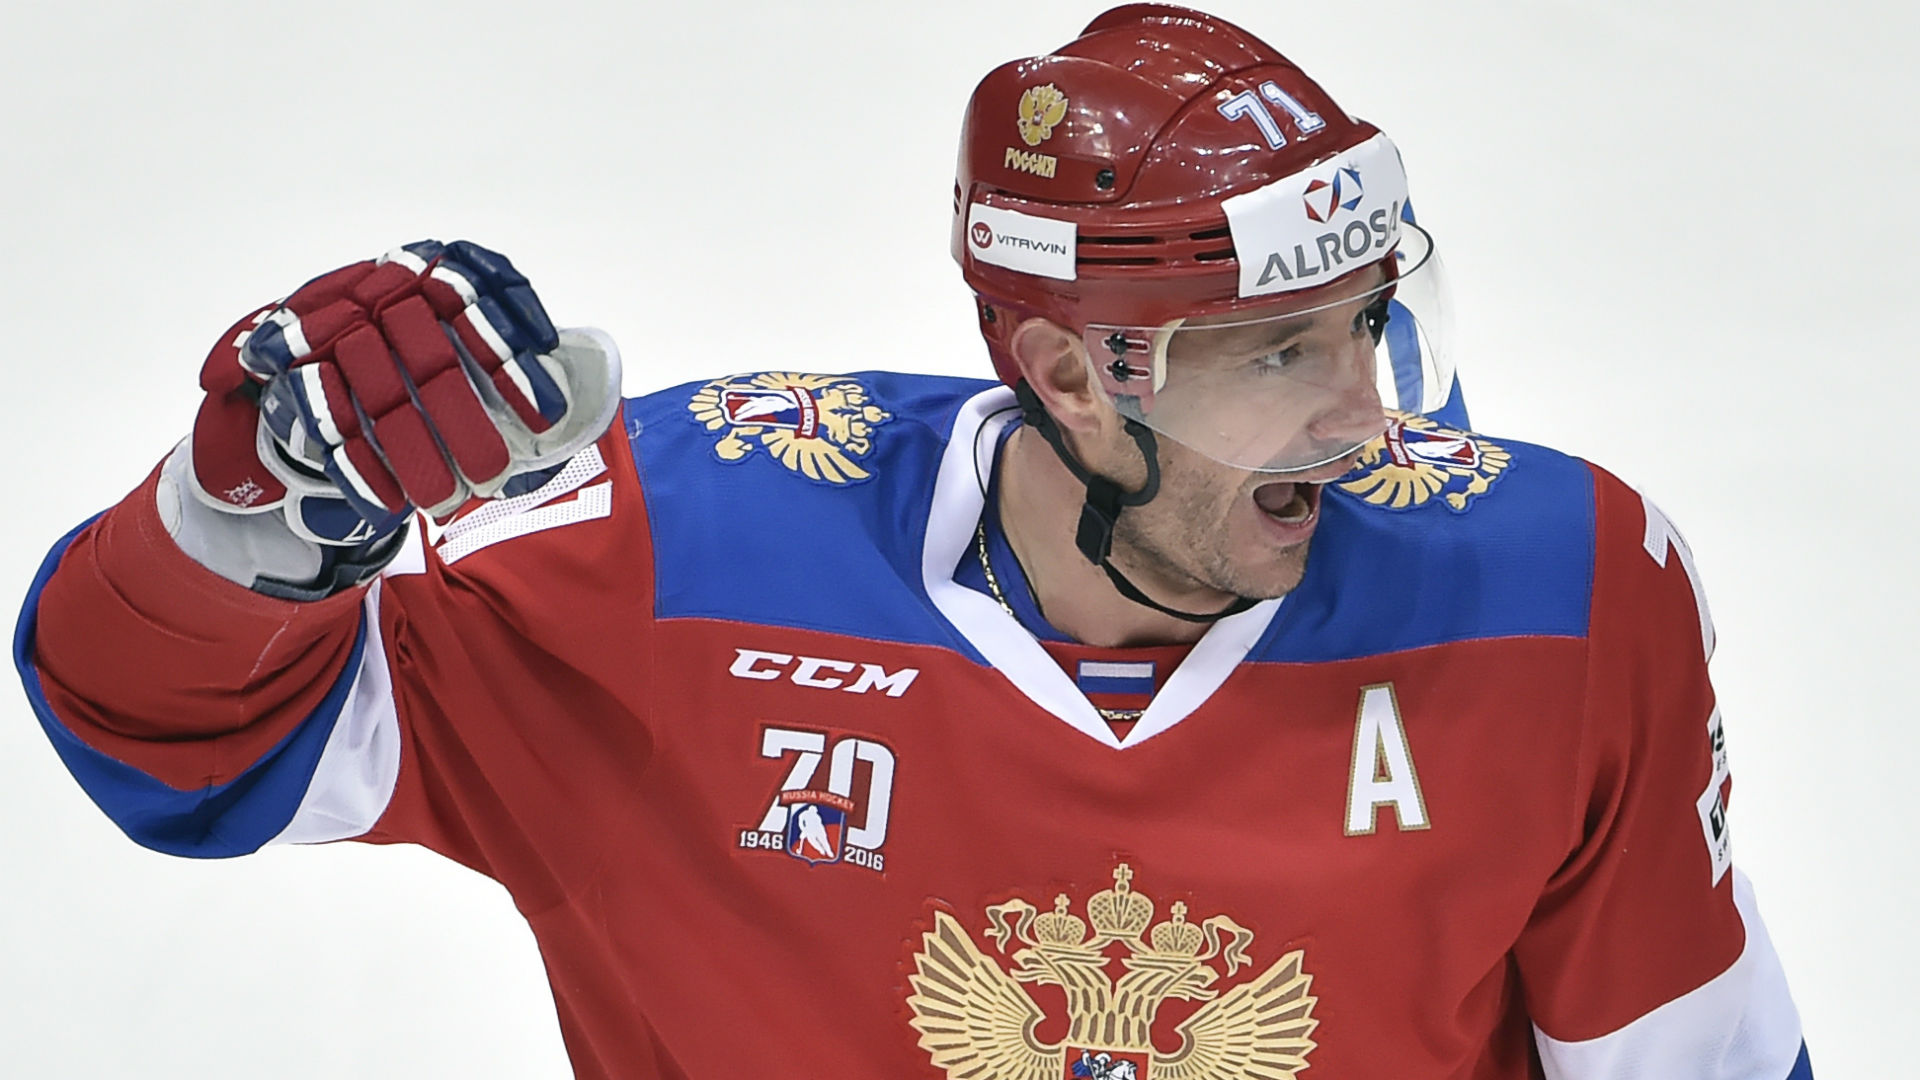 Kovalchuk will return to KHL